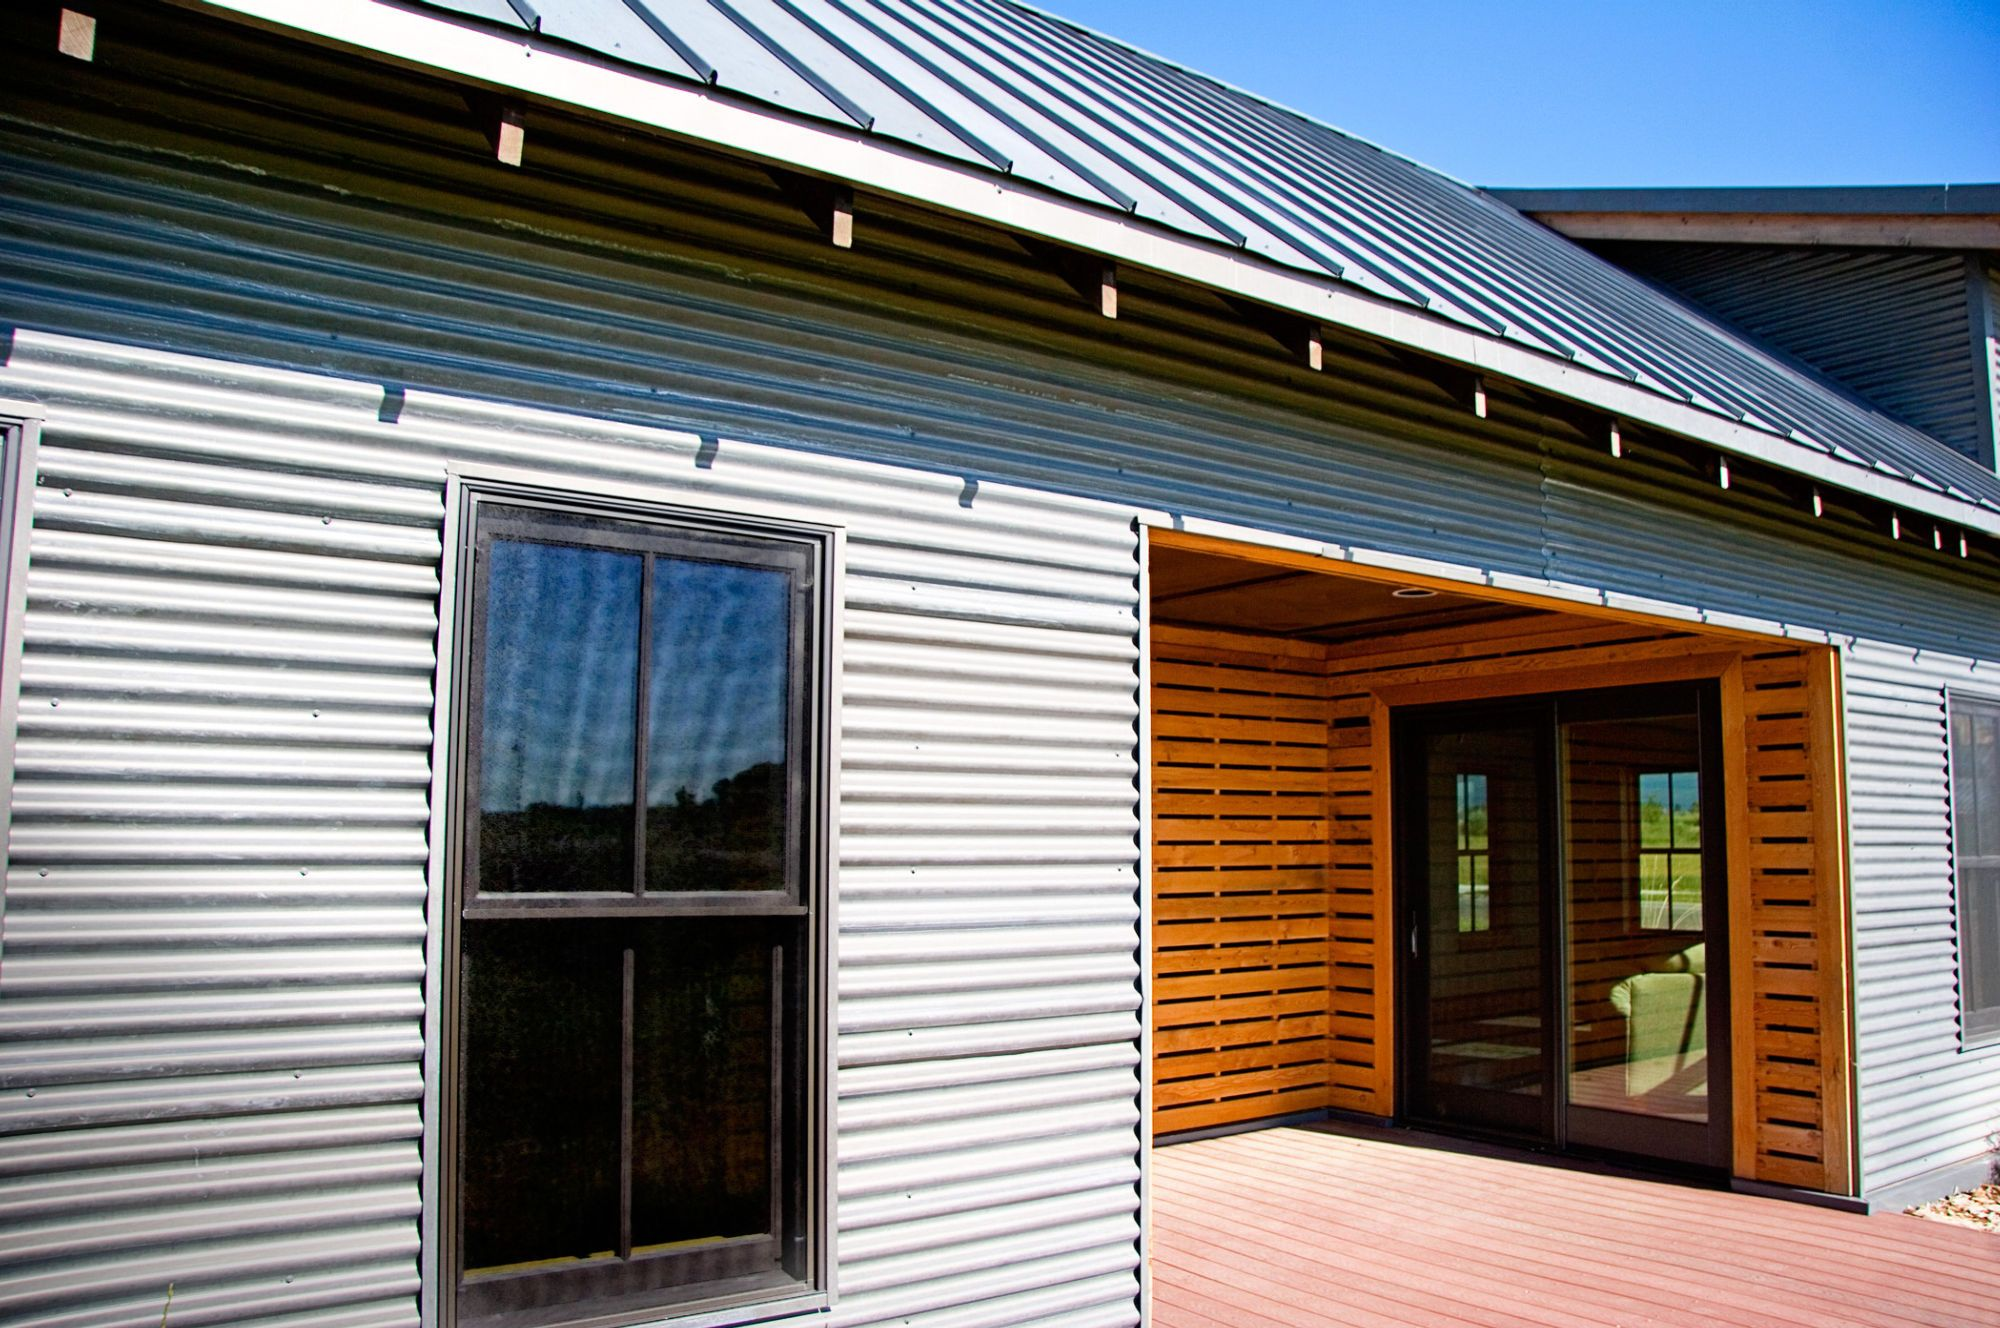 Decorate Exterior Using Corrugated Metal Siding For Residential